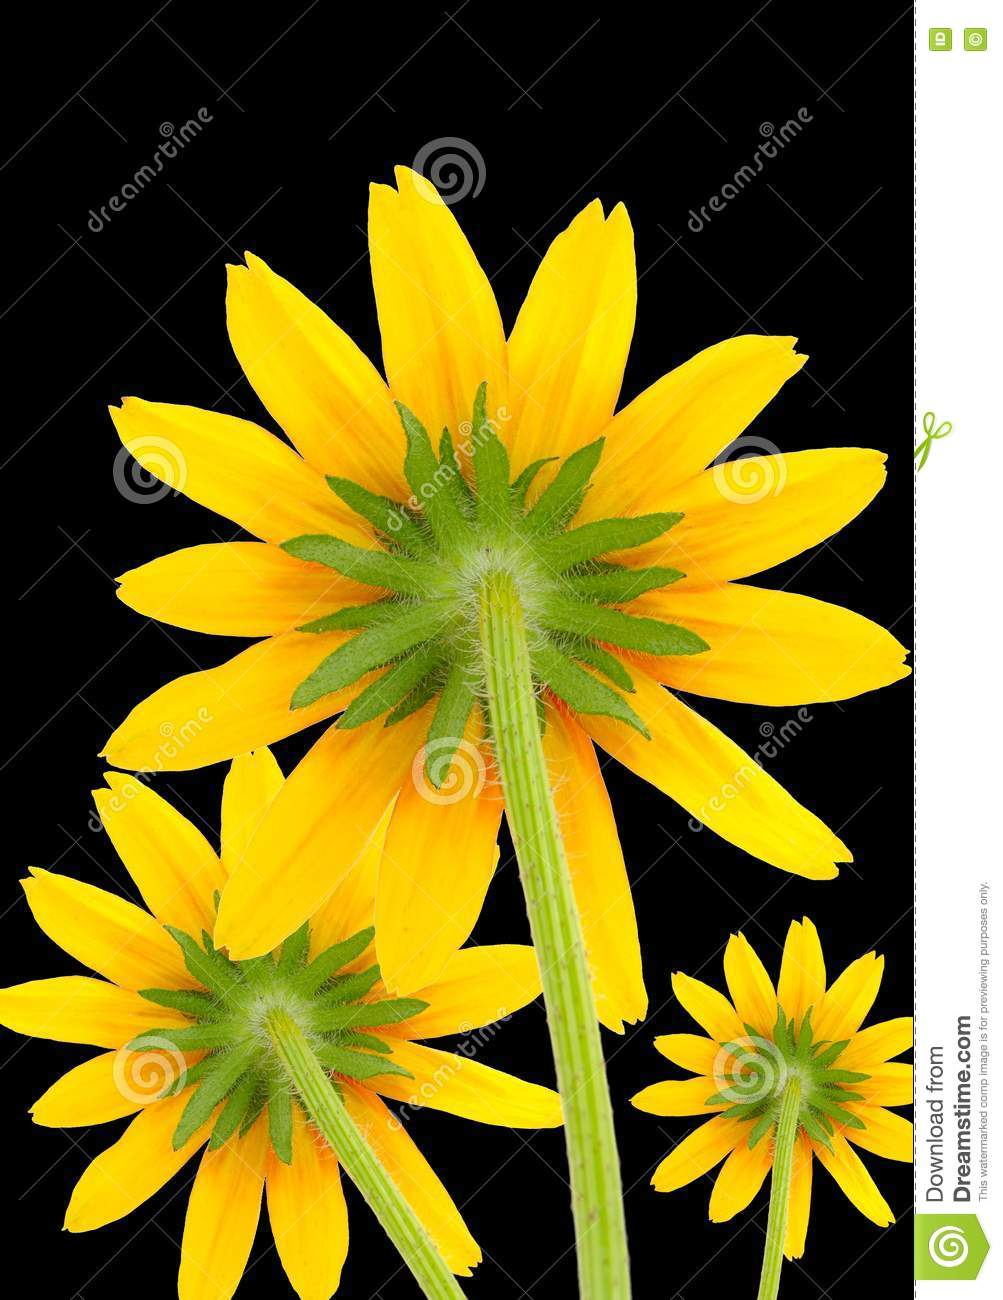 yellow-flowers-black-background-21883774 jpgYellow Flowers Black Background